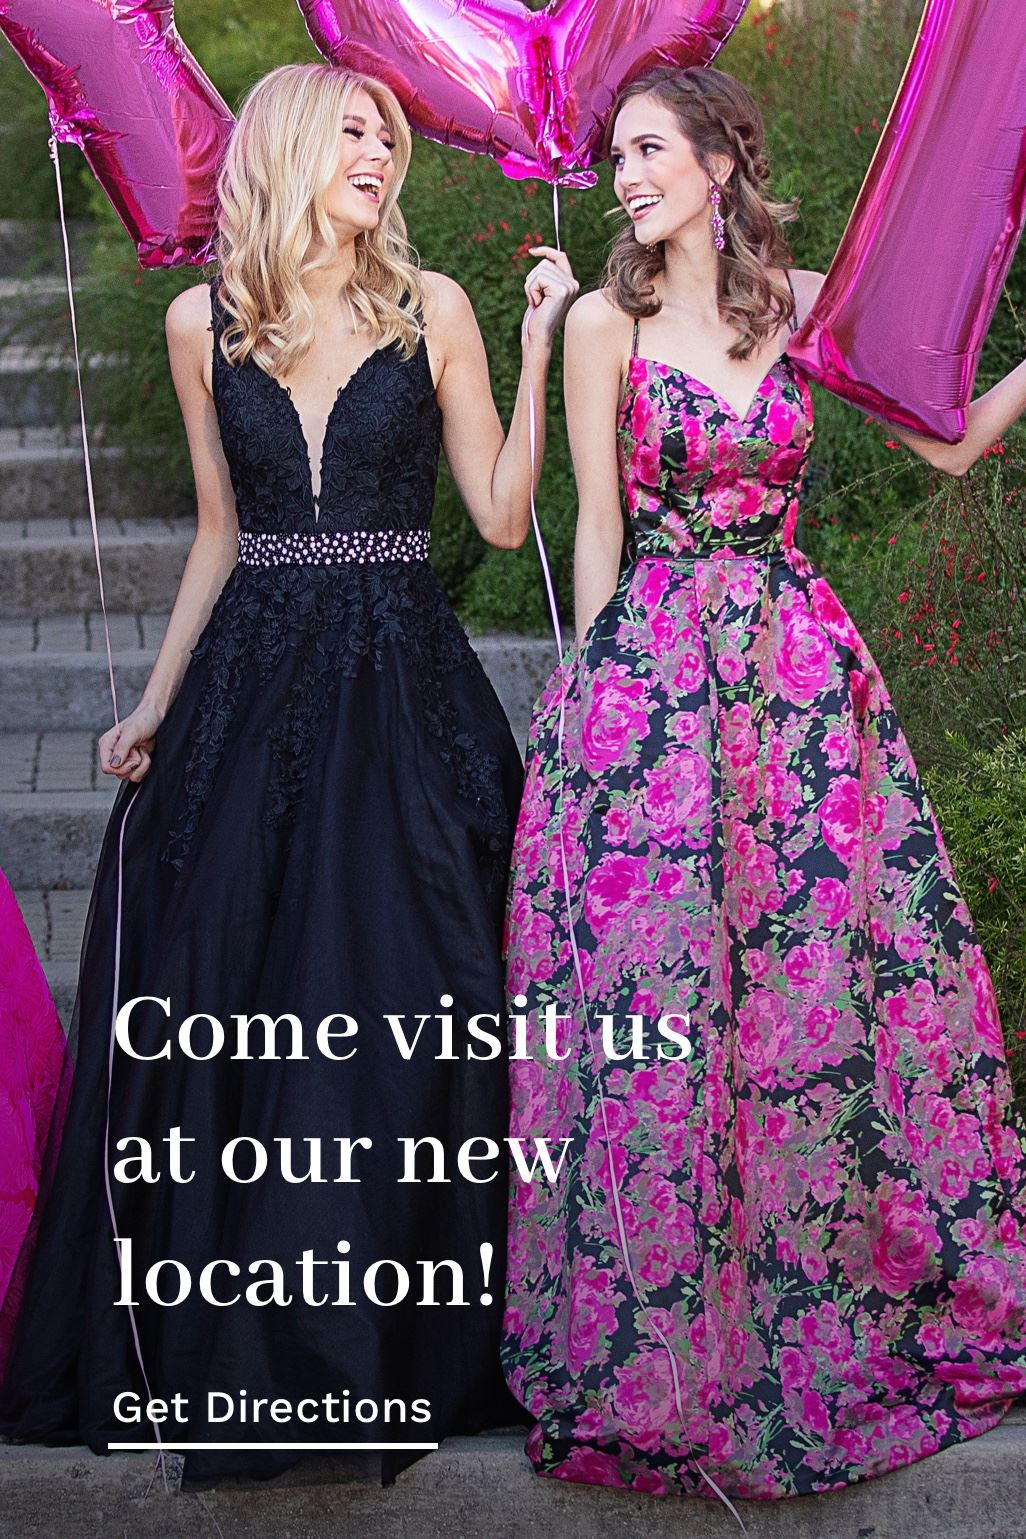 Gautier | Premier Dress Shop in San Antonio, TX!